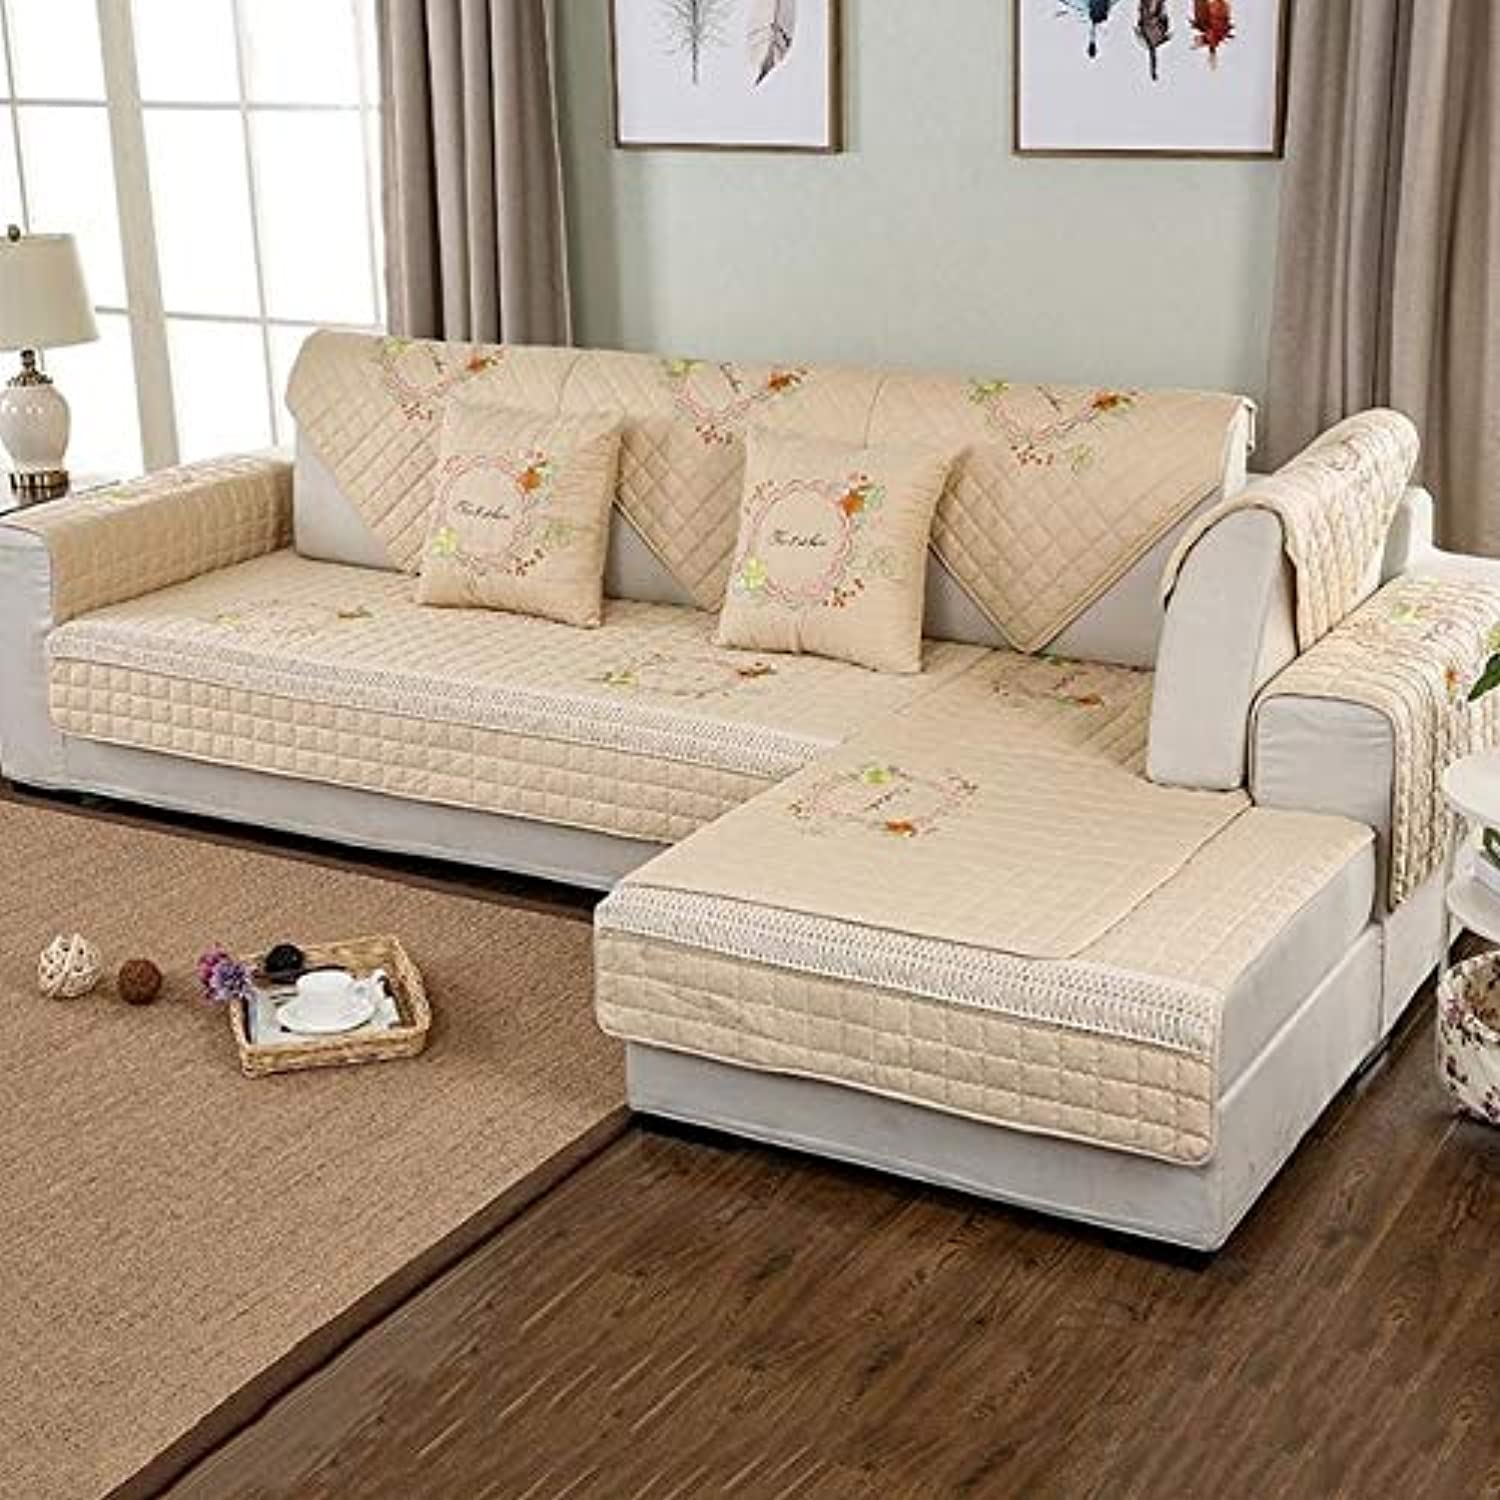 Farmerly 1-Piece Embroidered Slip Sofa Non-Slip Cotton Quilted Corner Sectional Sofa Couch Cover Lig Room Sofa Decoration  Brown 03, 90x90cm 1 Piece